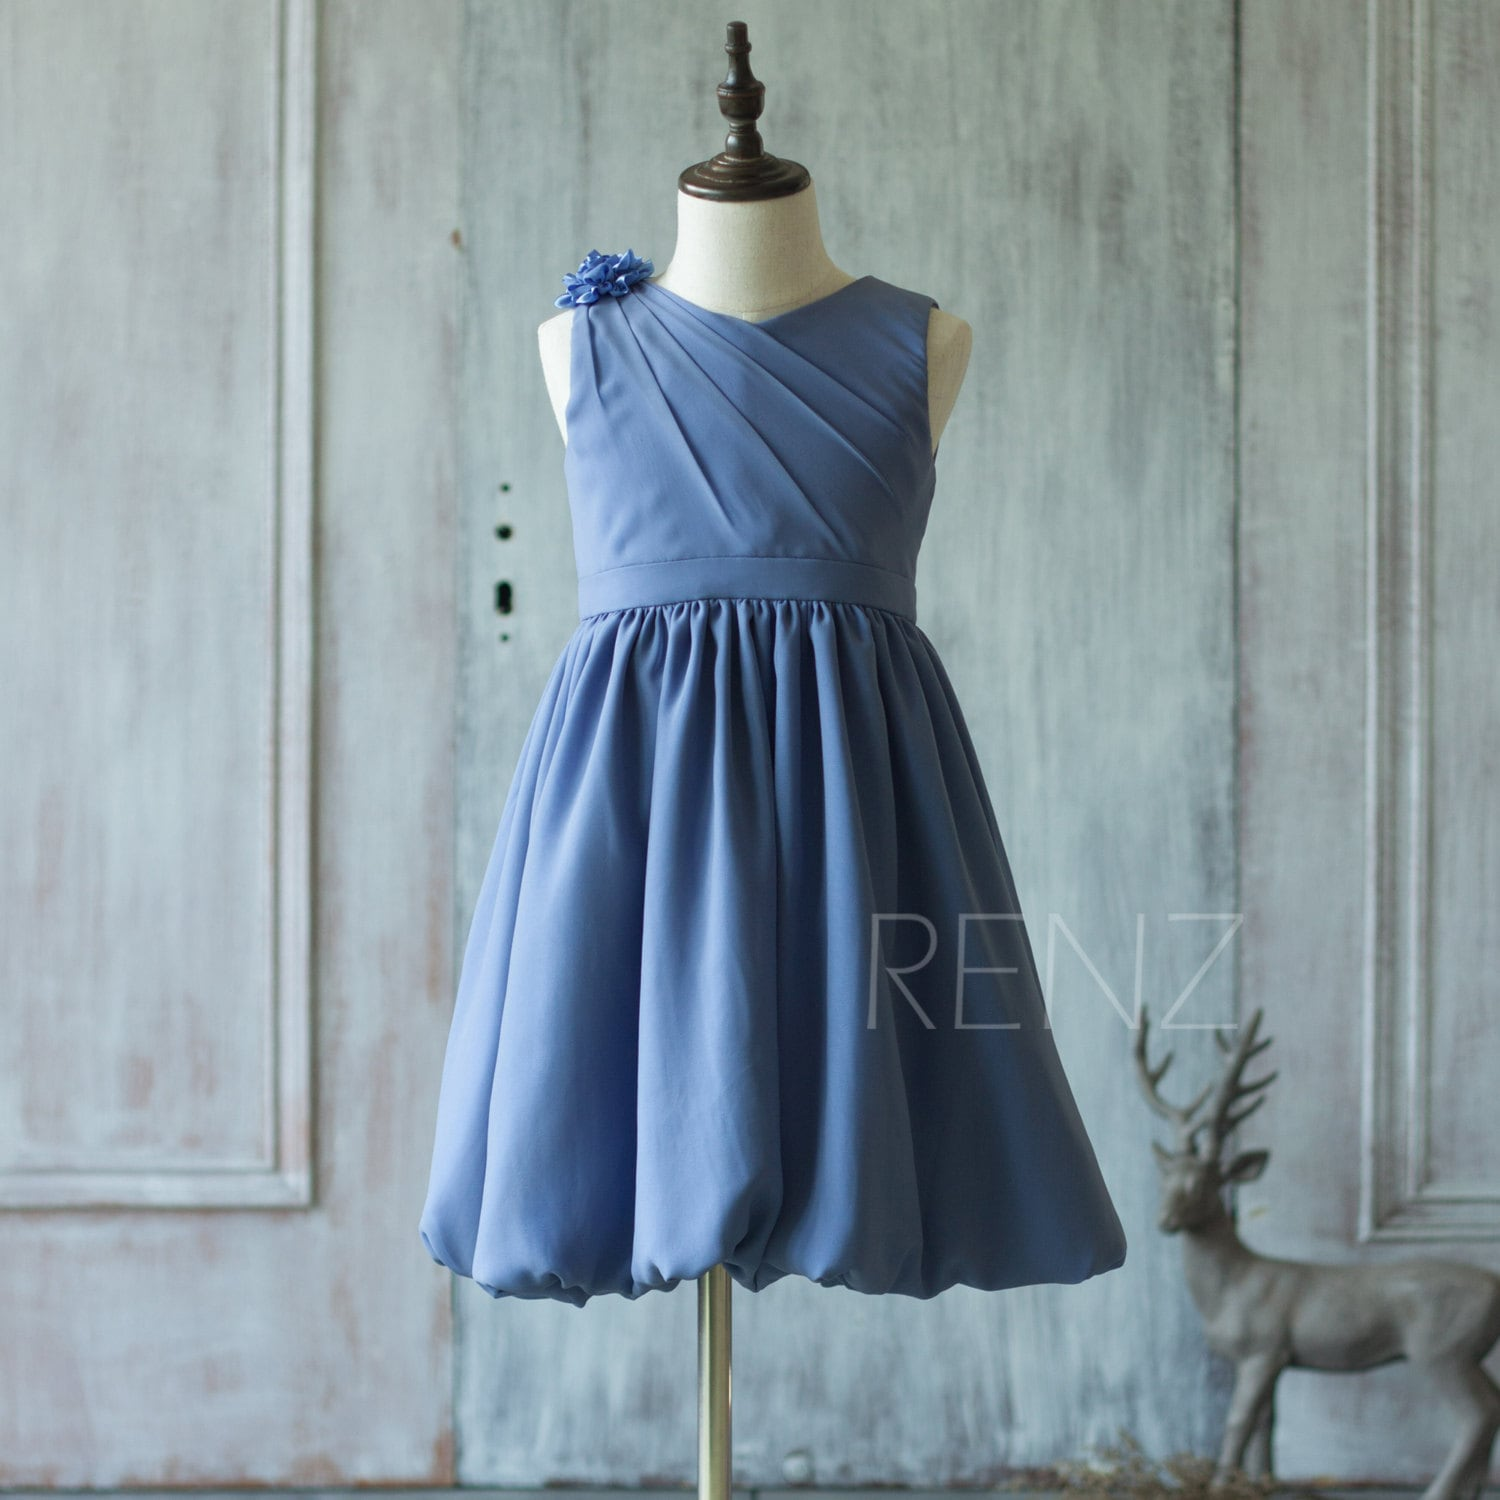 Junior Bridesmaid Dress Steel Blue Flower Girl DressA line